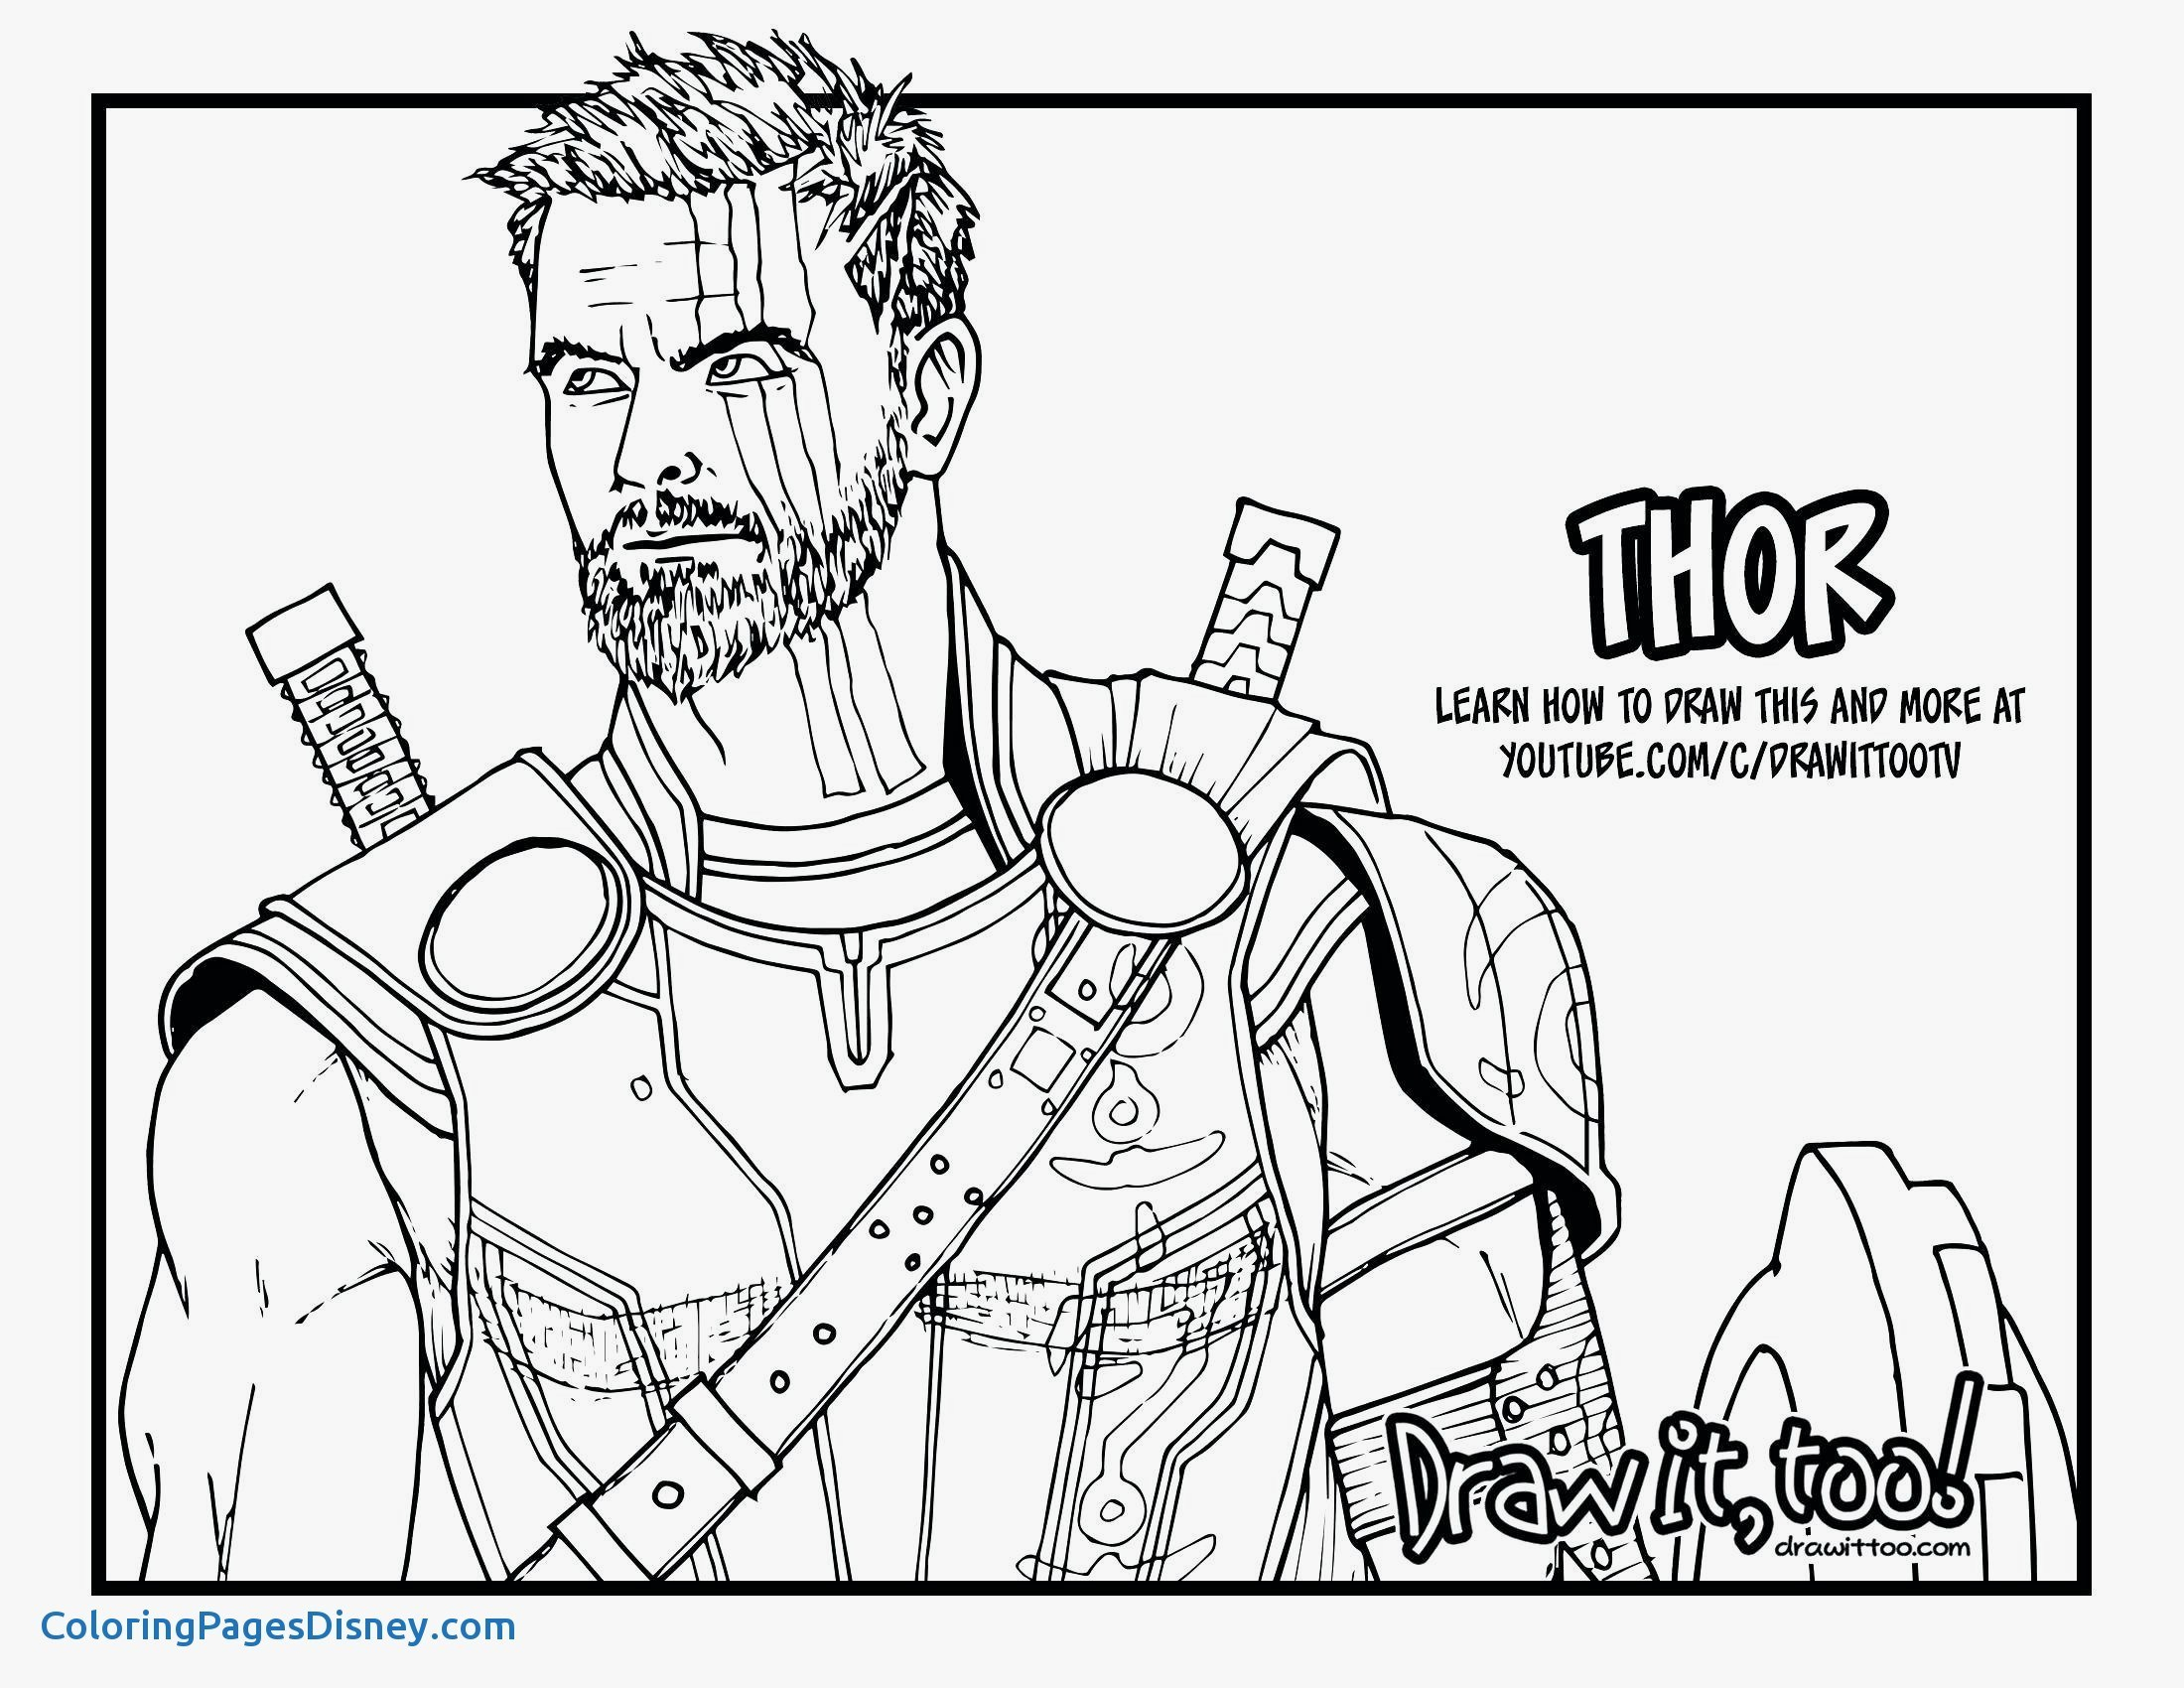 Avengers Coloring Pages  Gallery 5m - Save it to your computer